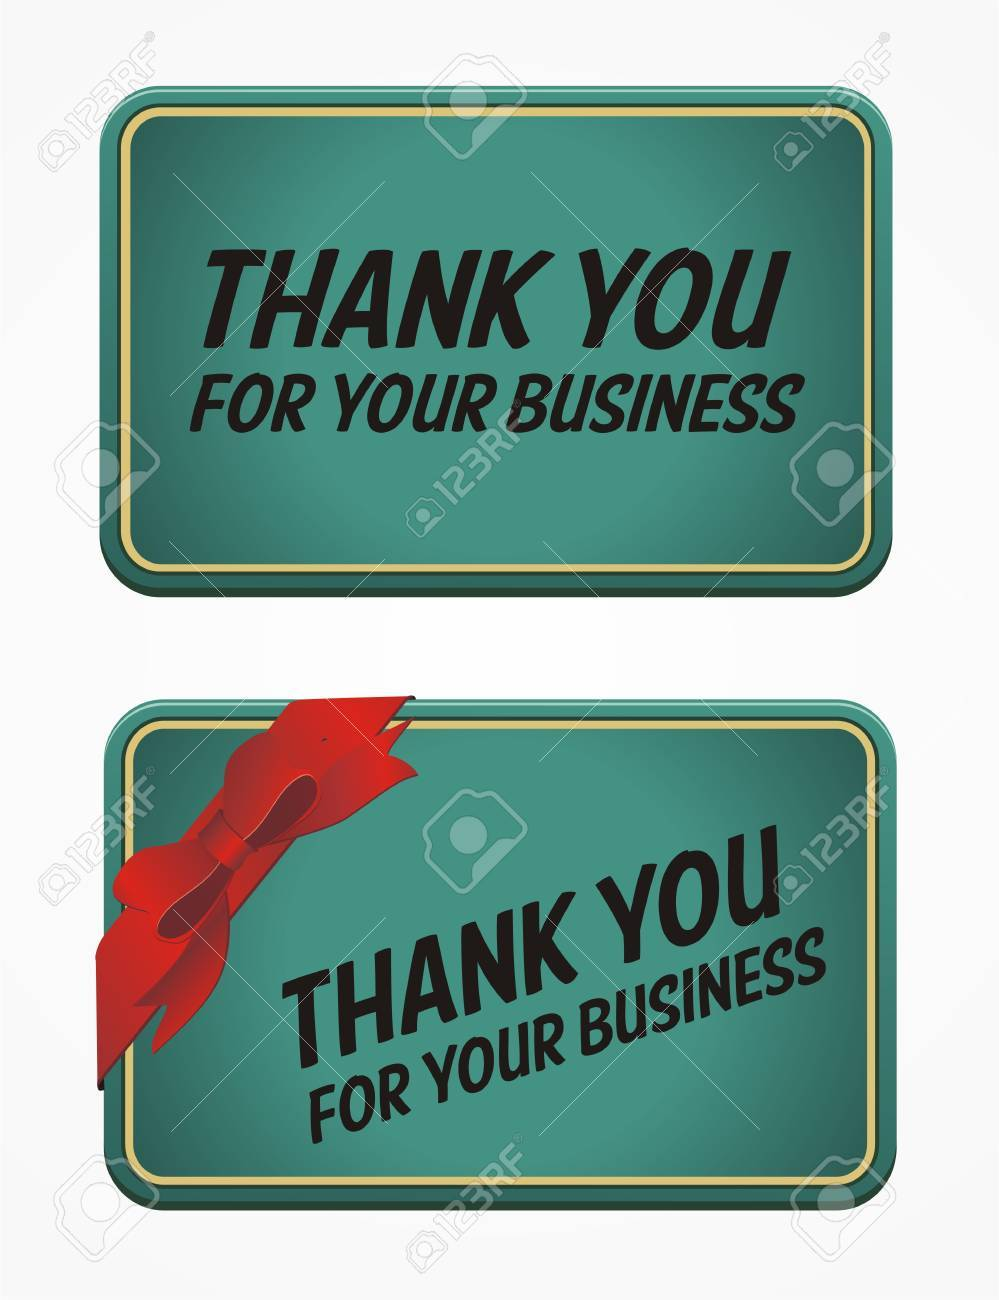 Thank You For Your Business Card Royalty Free Cliparts, Vectors, And ...